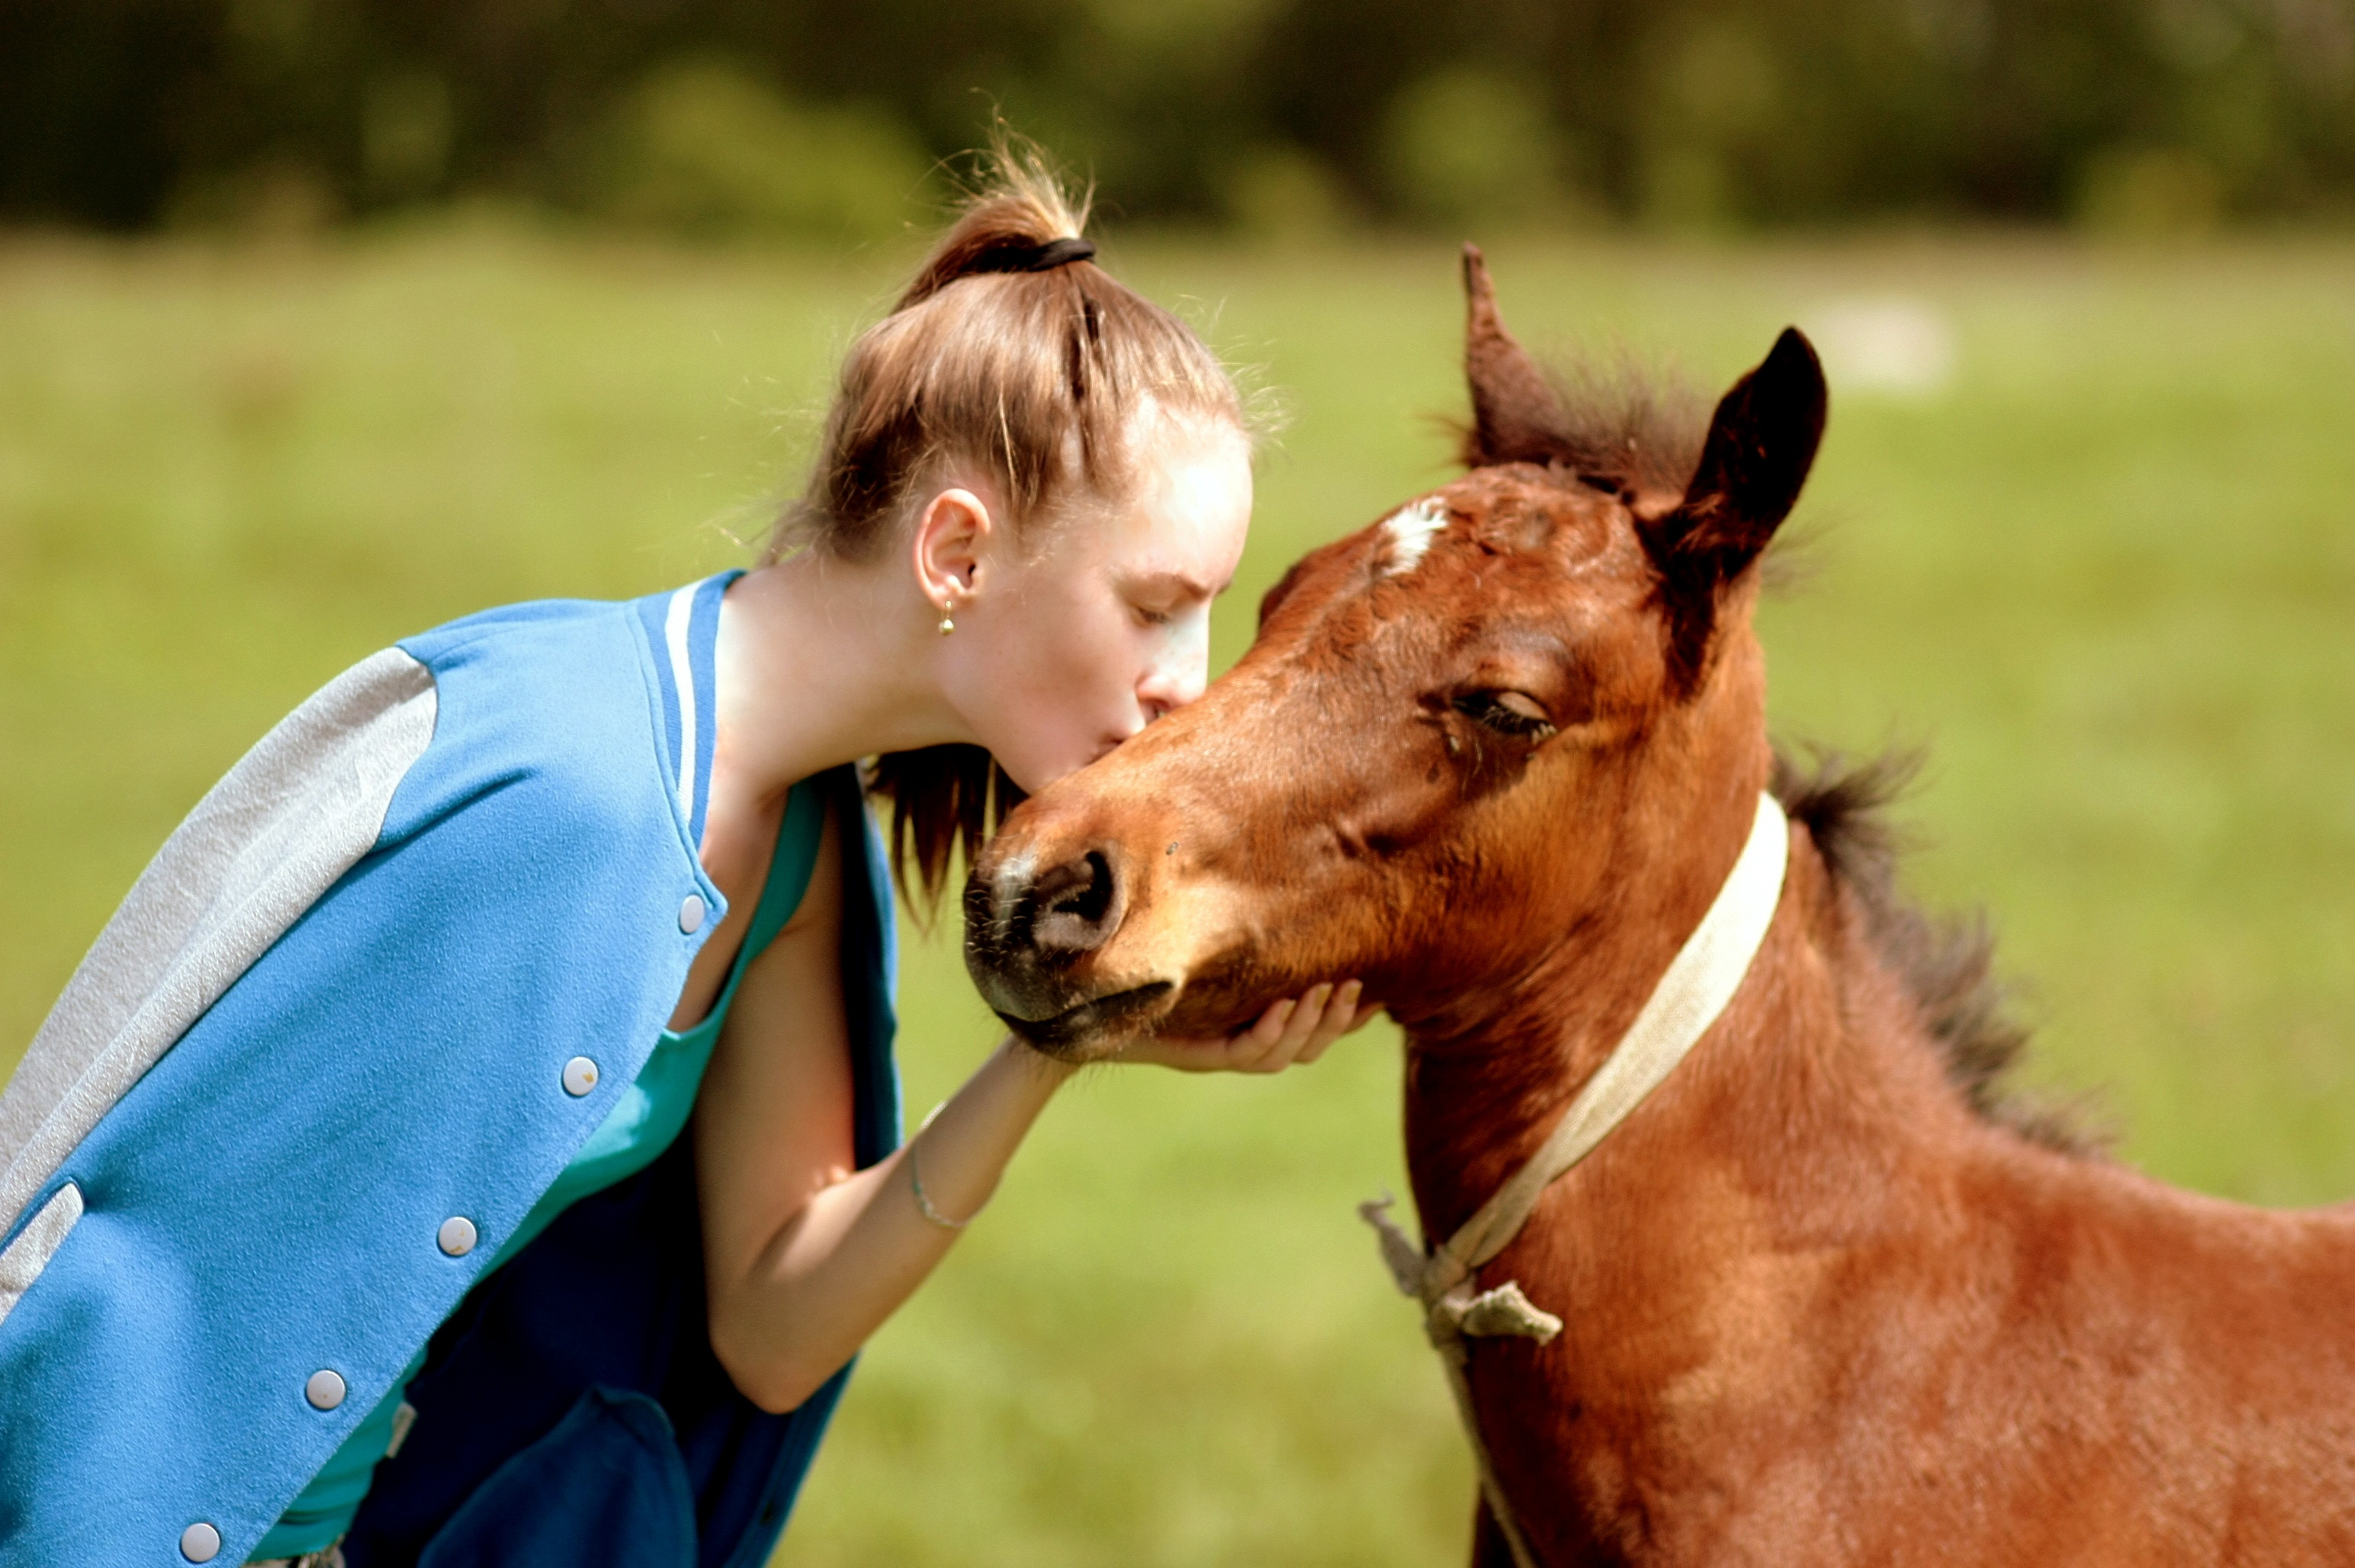 Have you imagined about checking in a hotel with your pet horse? here is the amazing story